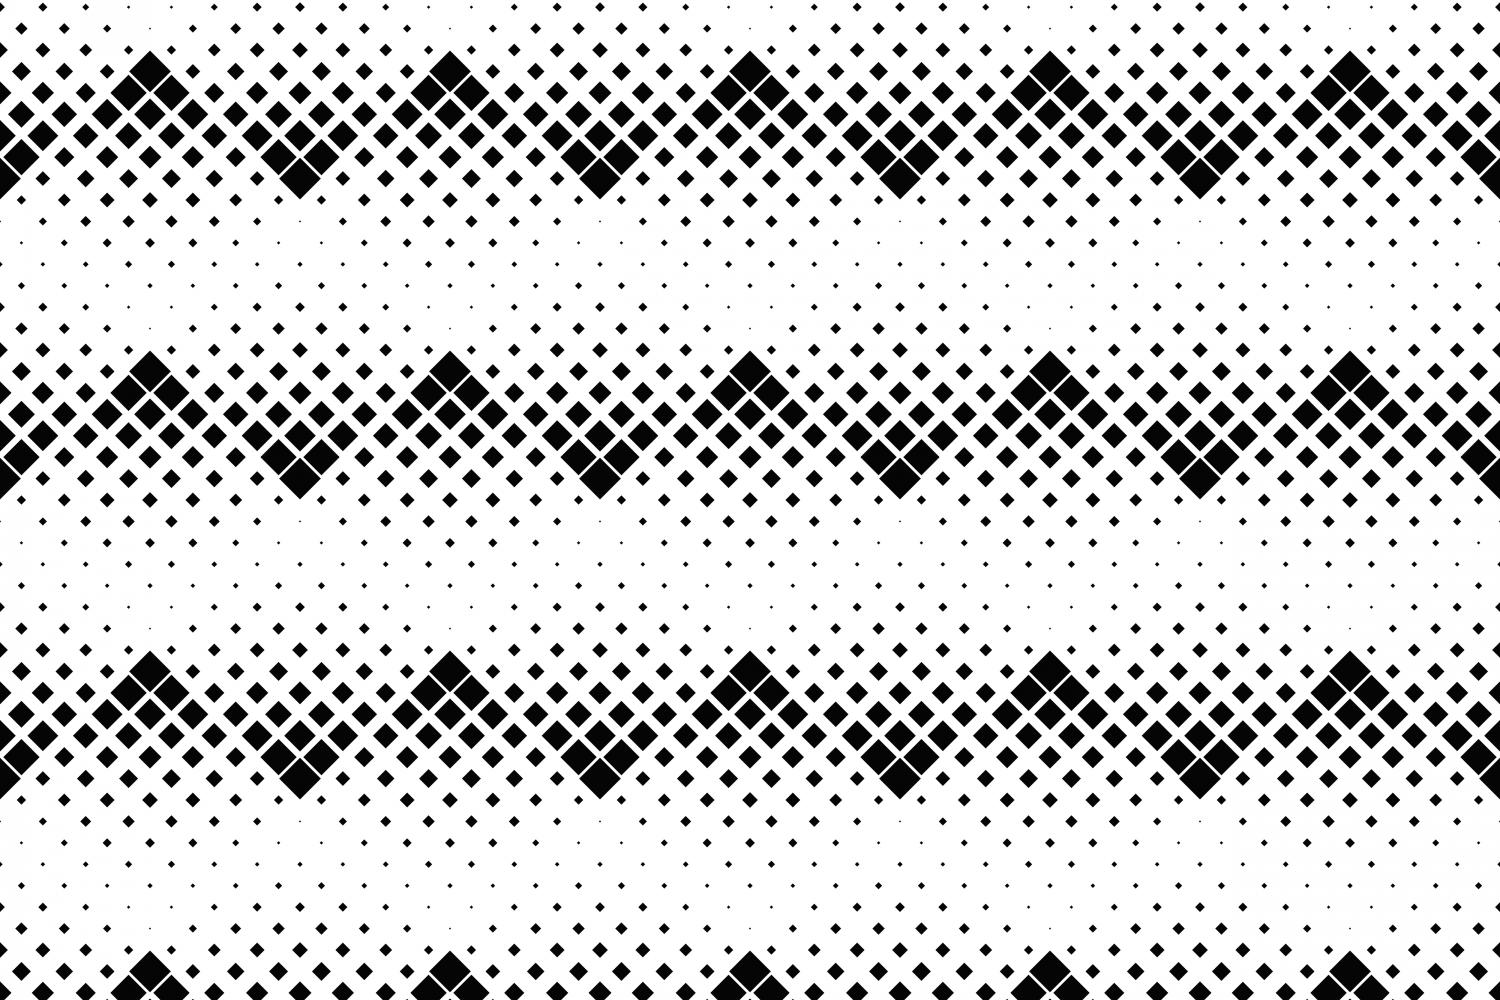 24 Seamless Square Patterns example image 6